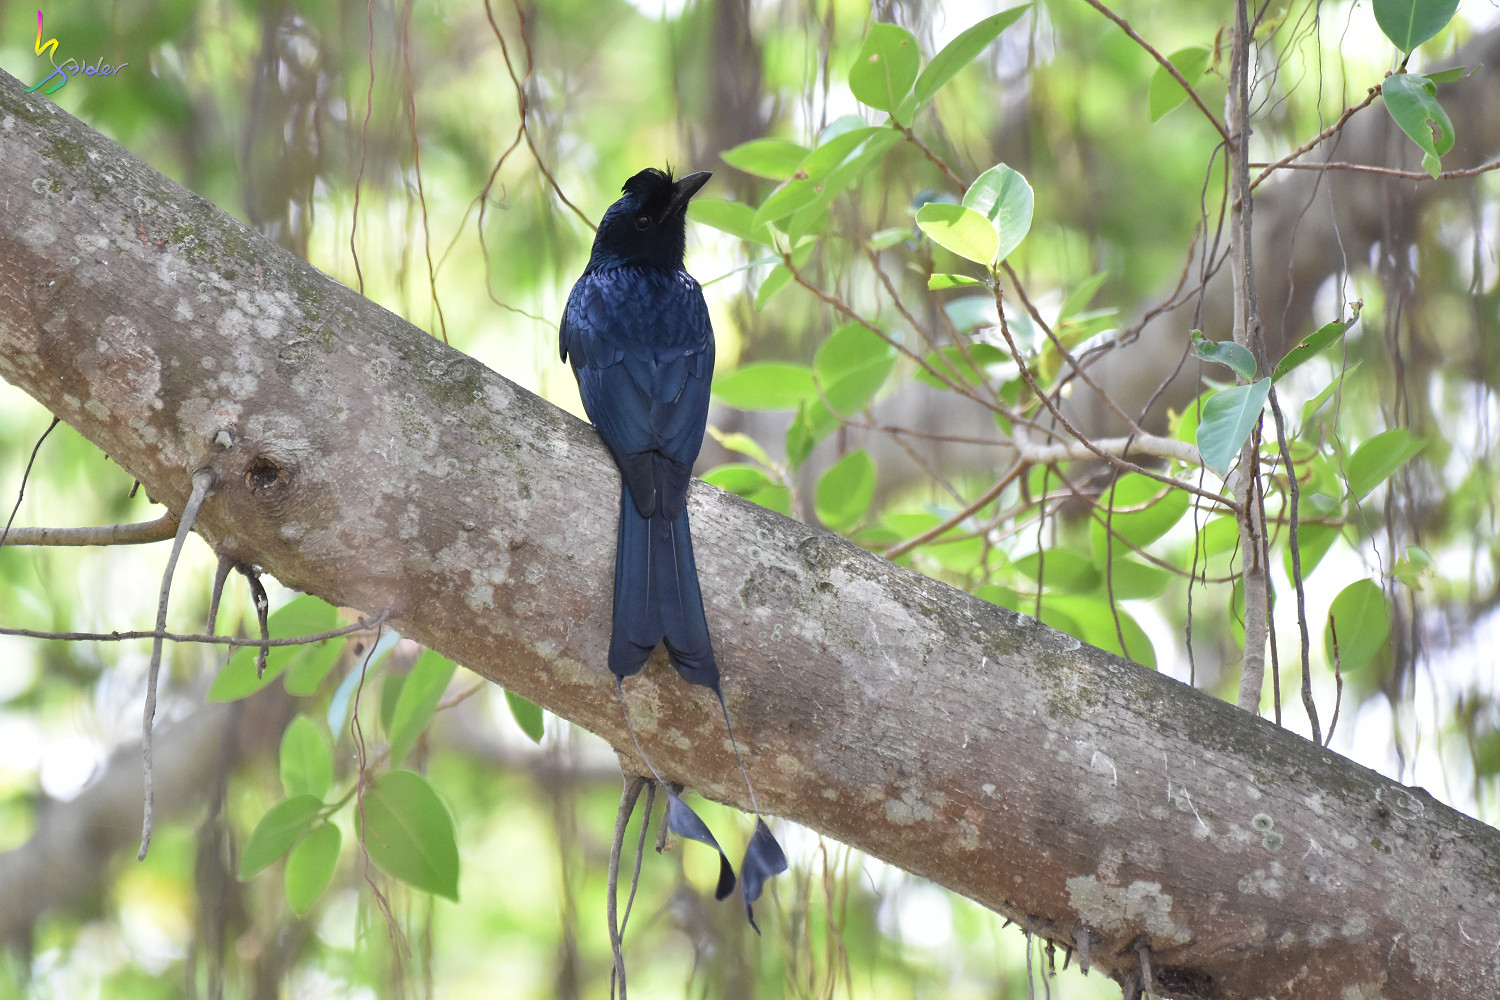 Greater_Racket-tailed_Drongo_4214